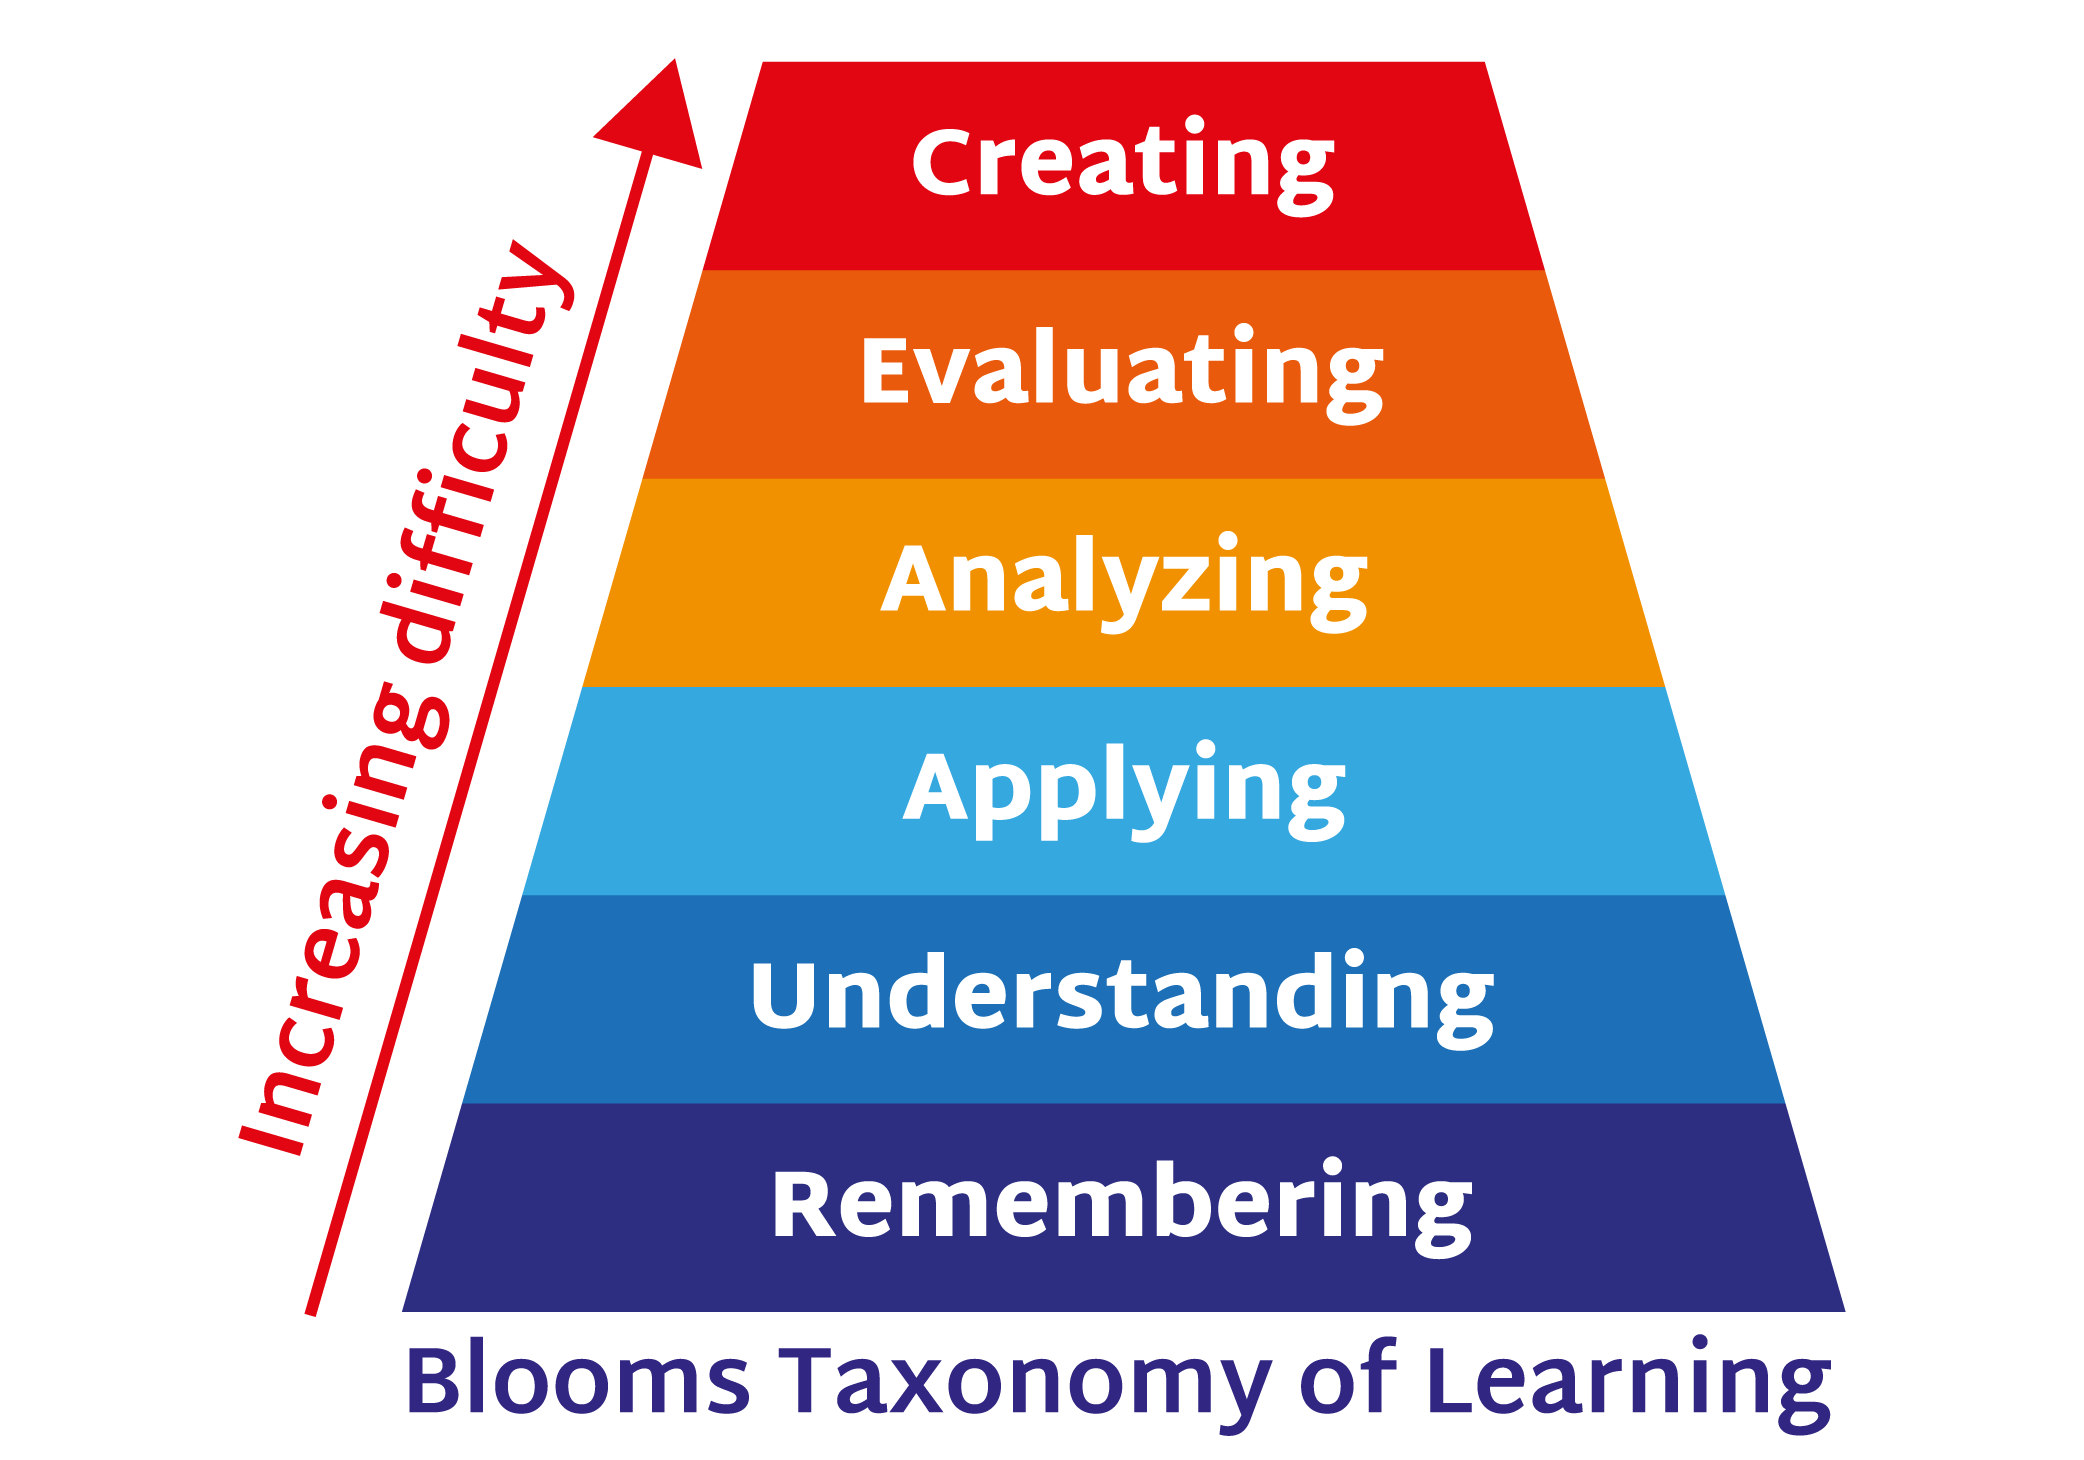 blooms-taxonomy-of-learning.jpg